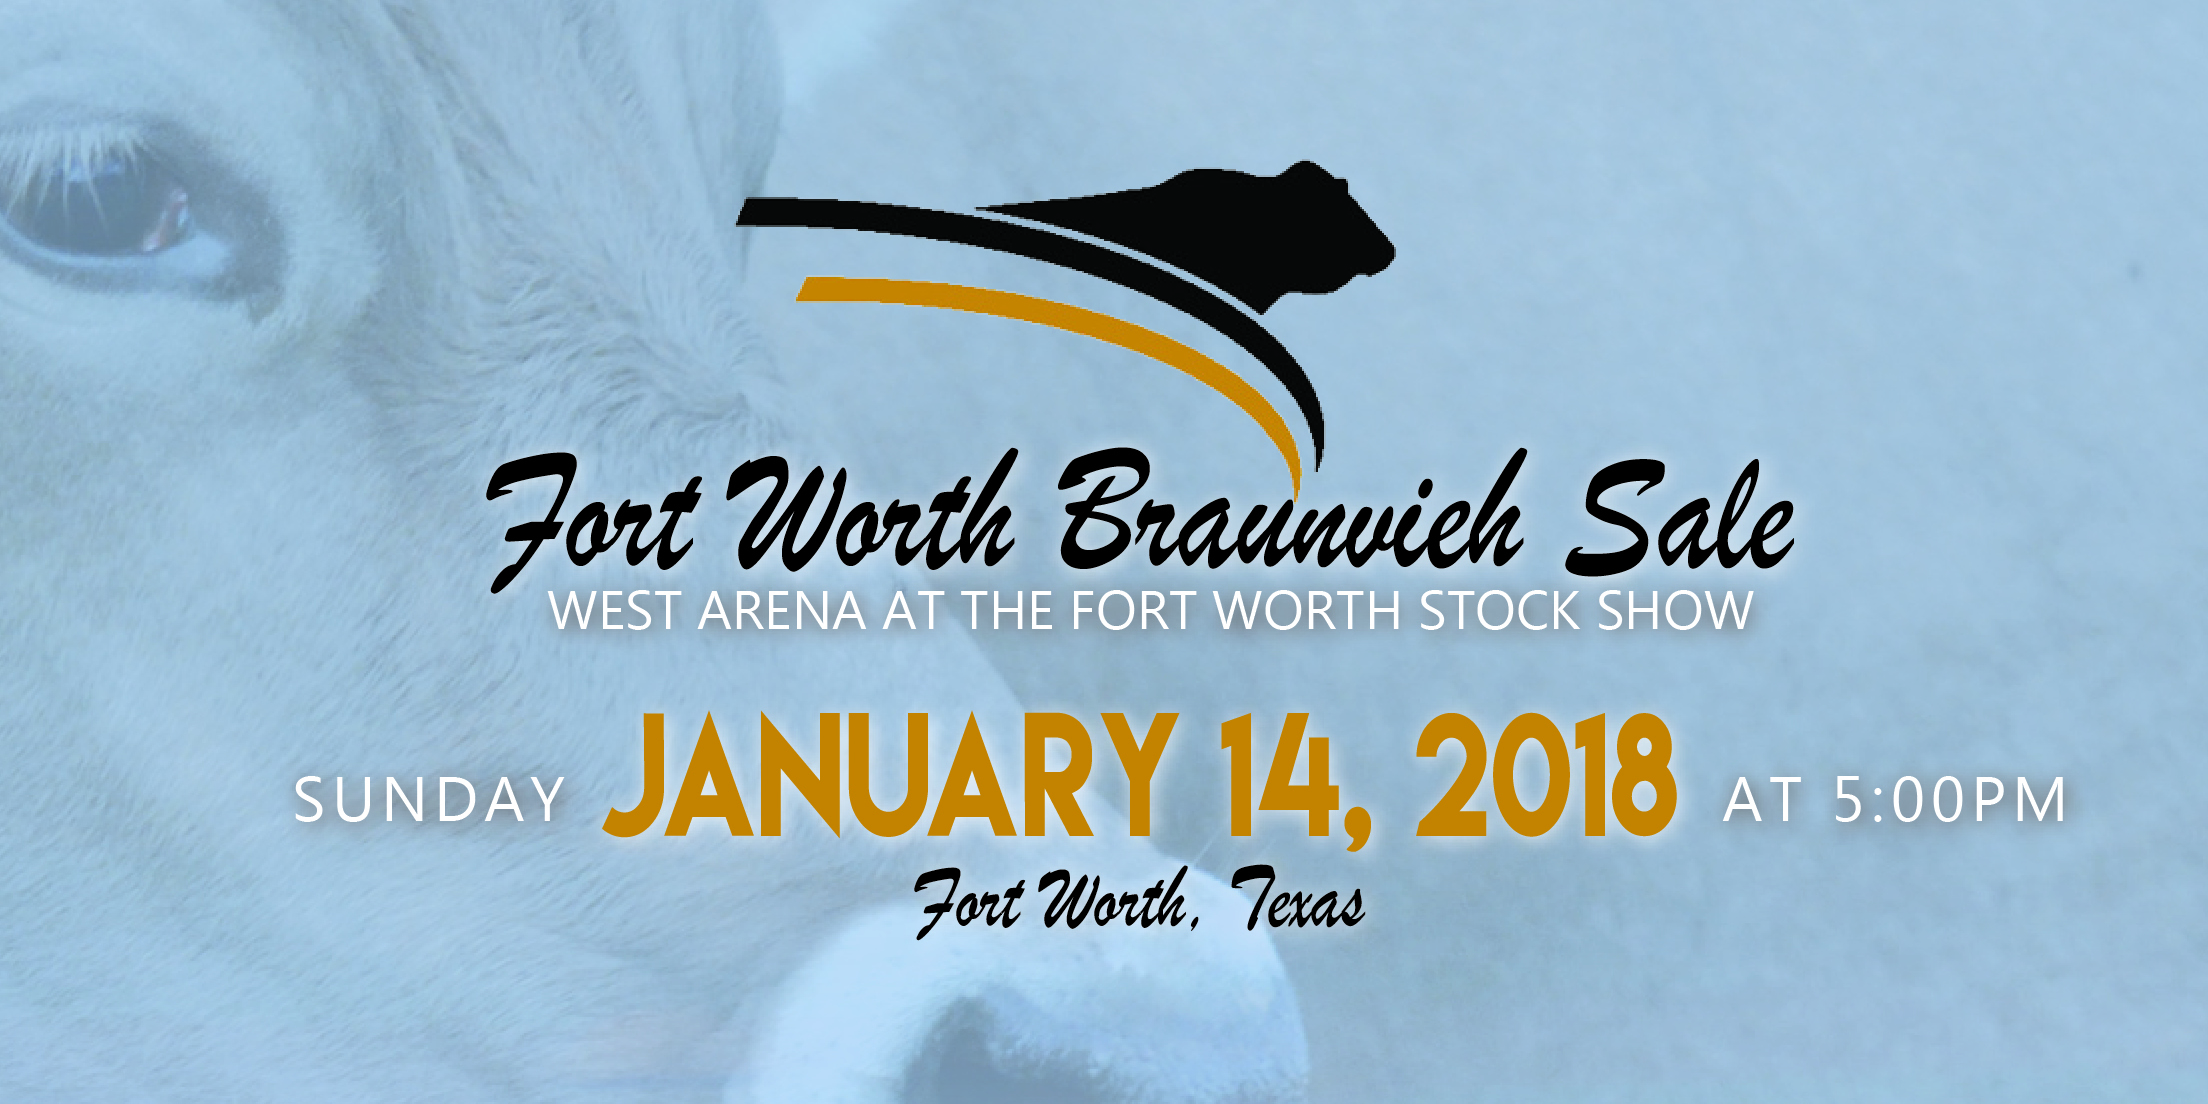 fort worth braunvieh sale feature image